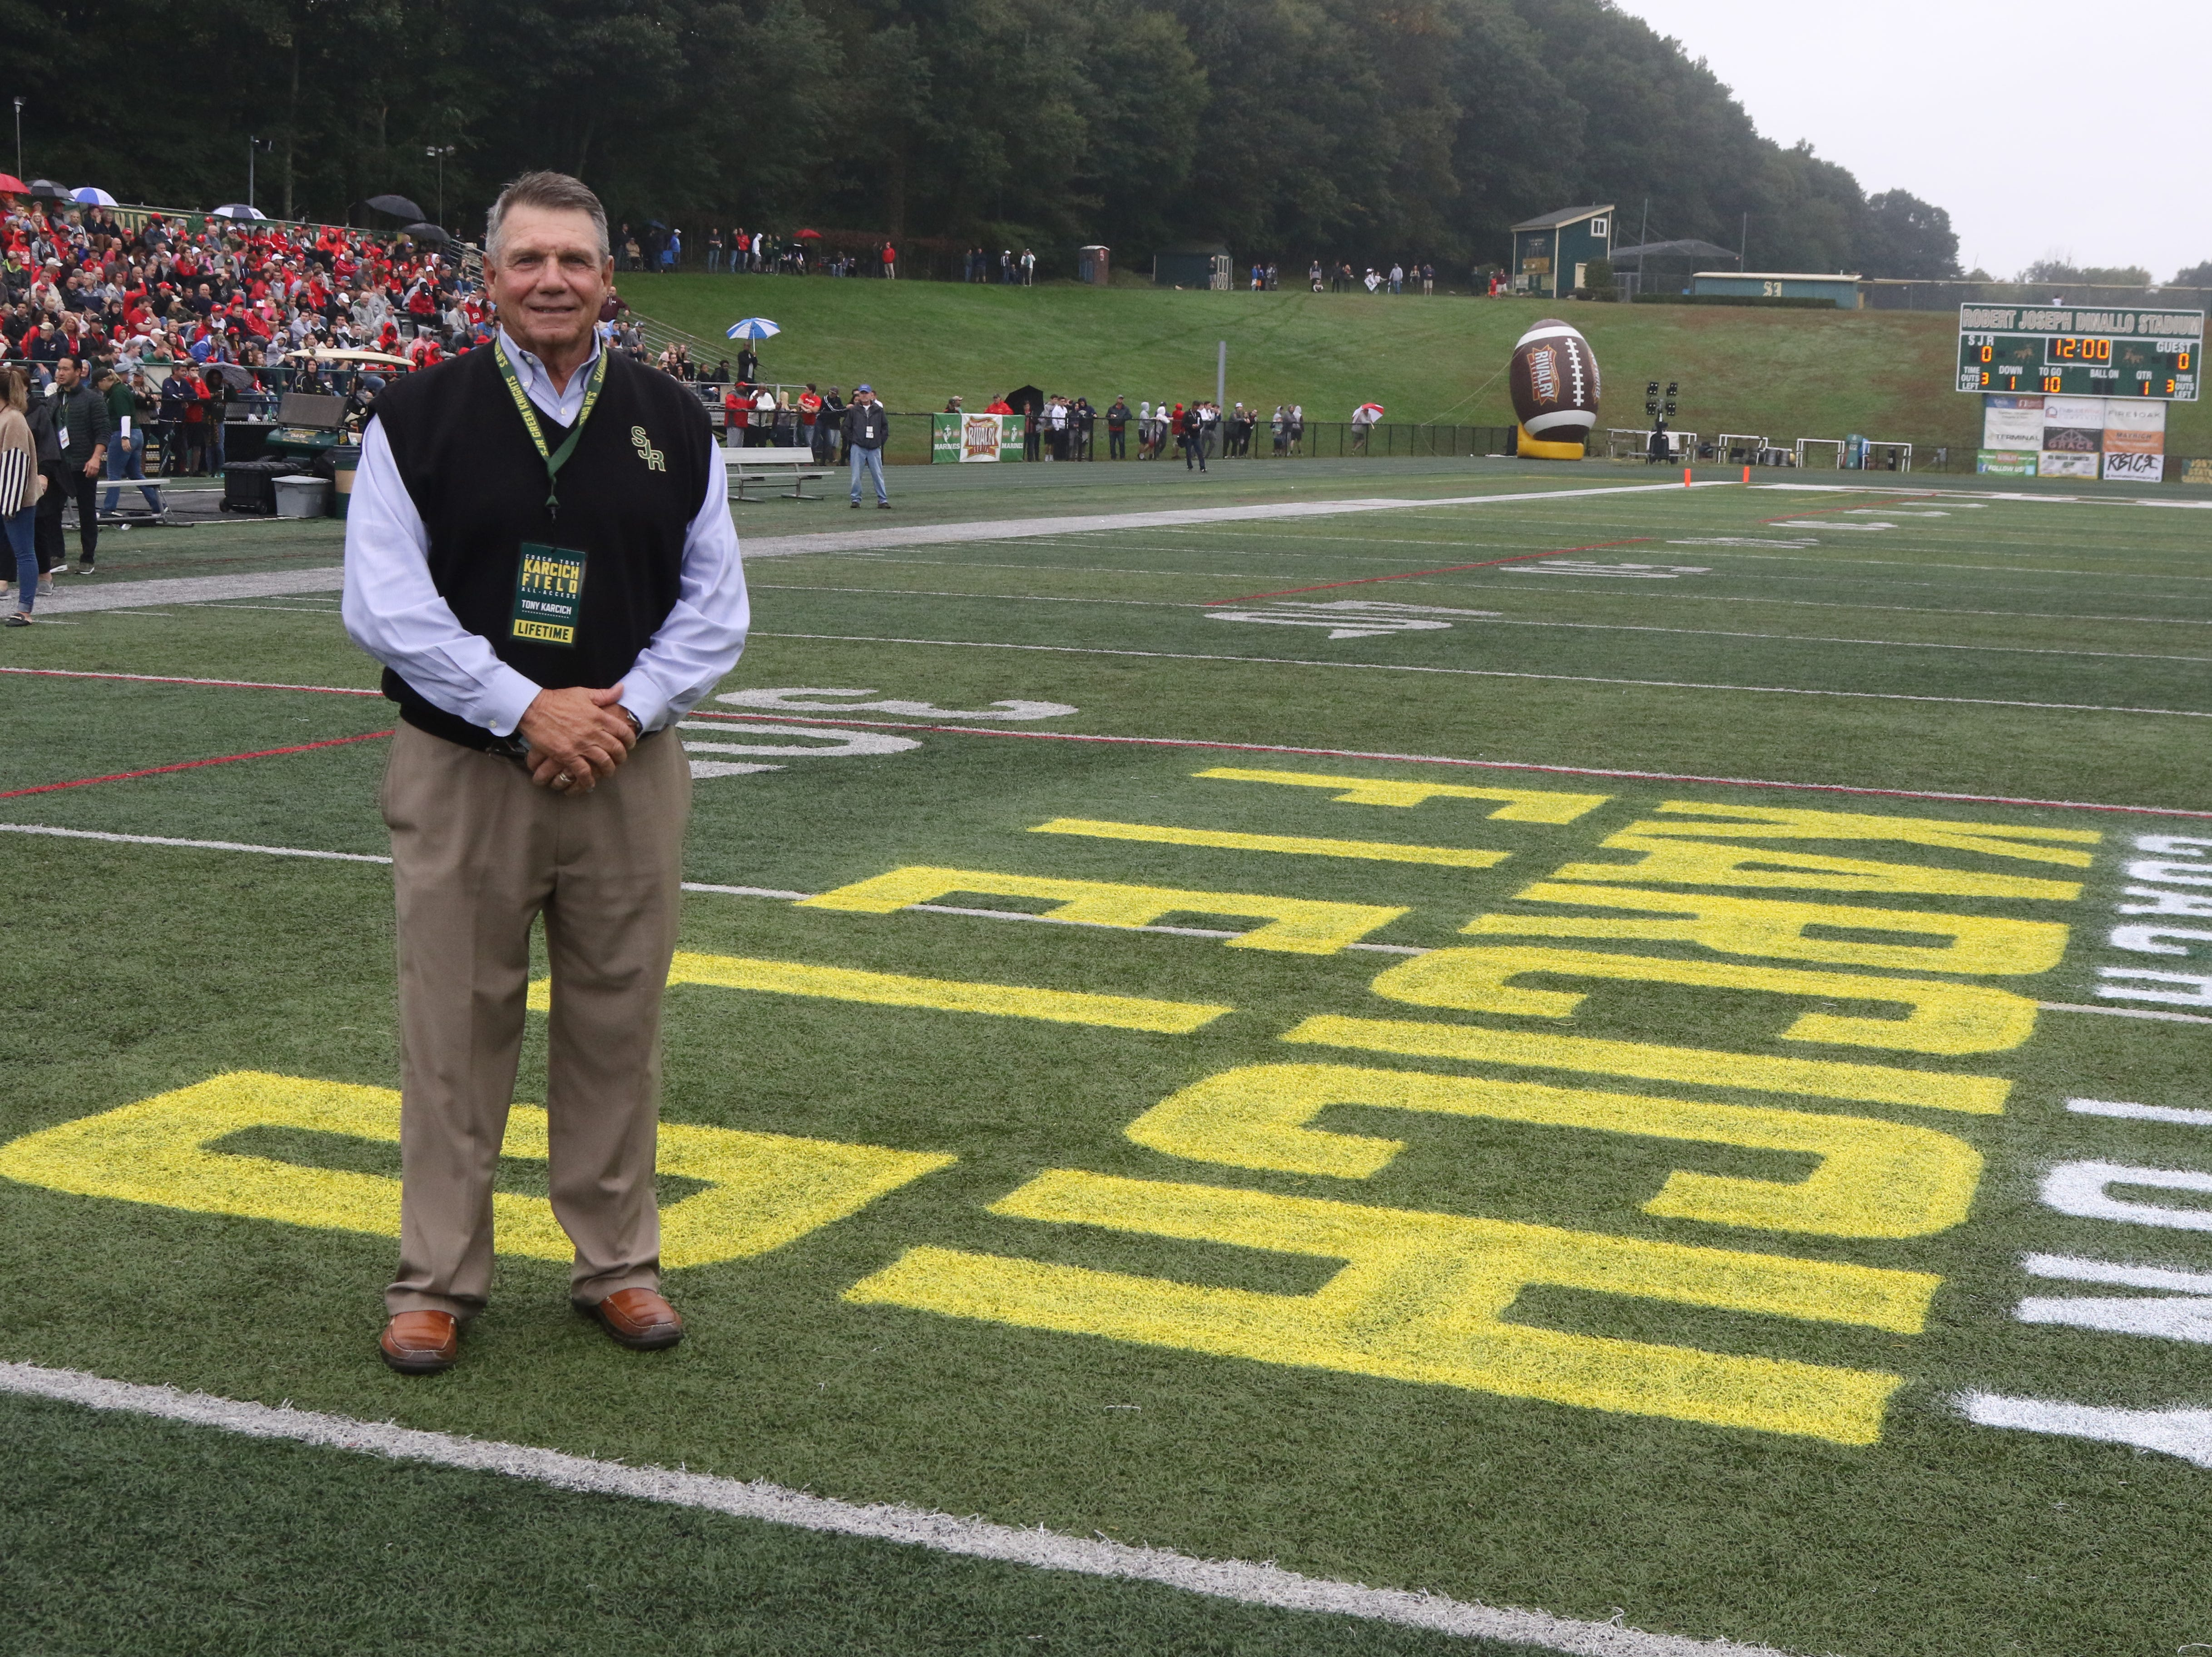 Former St. Joseph Coach, Tony Karcich during a ceremony honoring Karcich and naming the St. Joseph field after him.